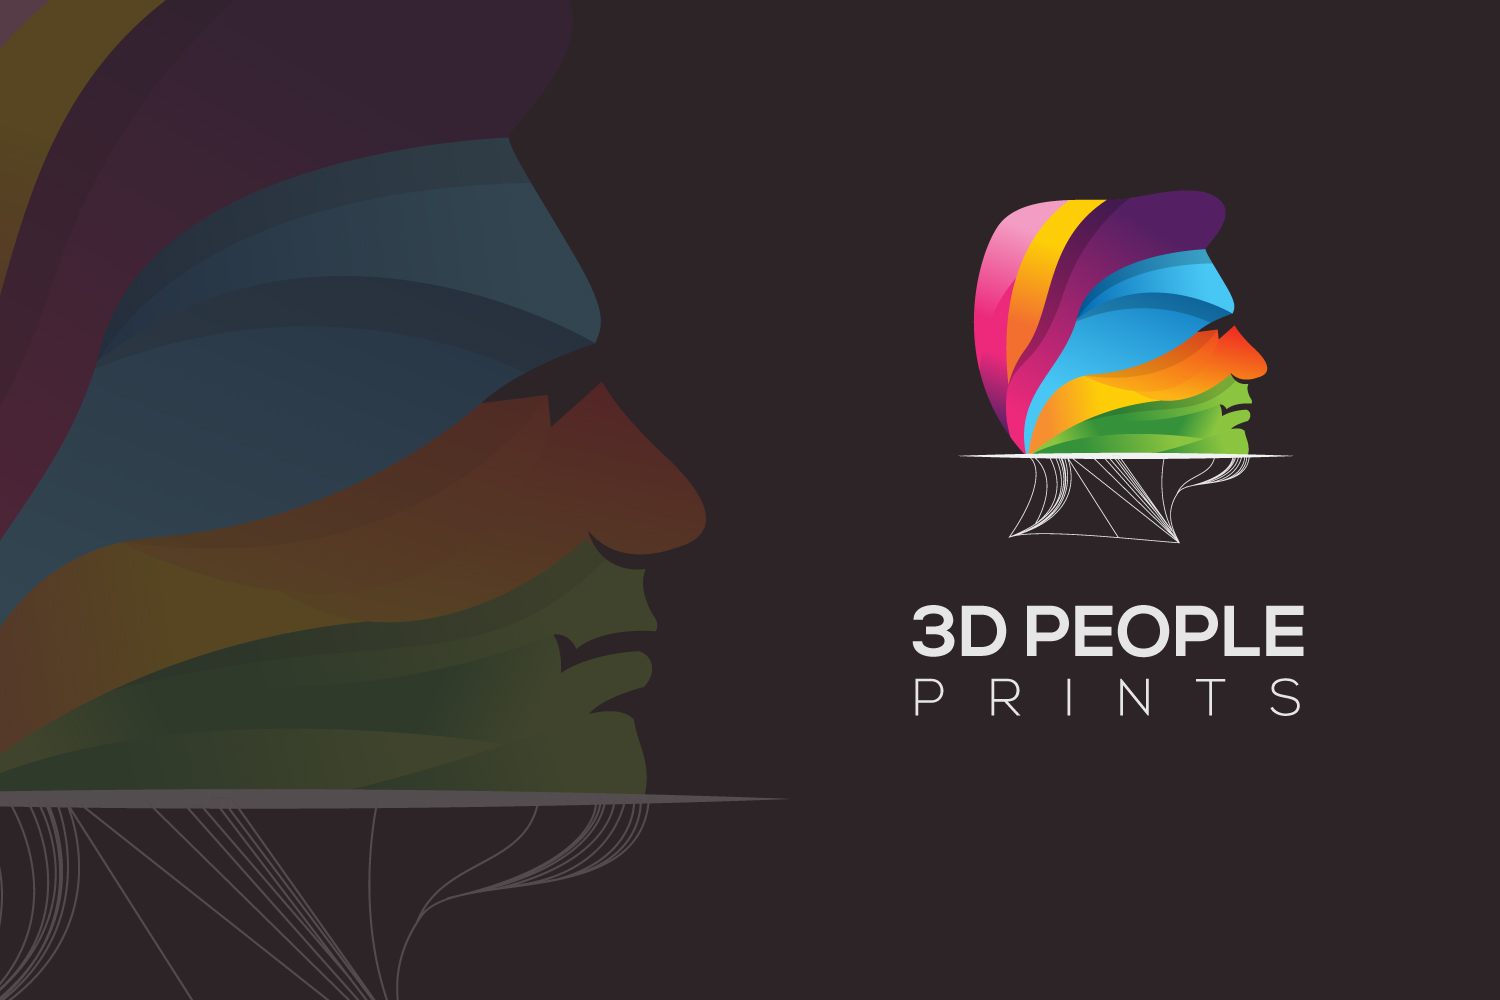 3d people print logo example image 1